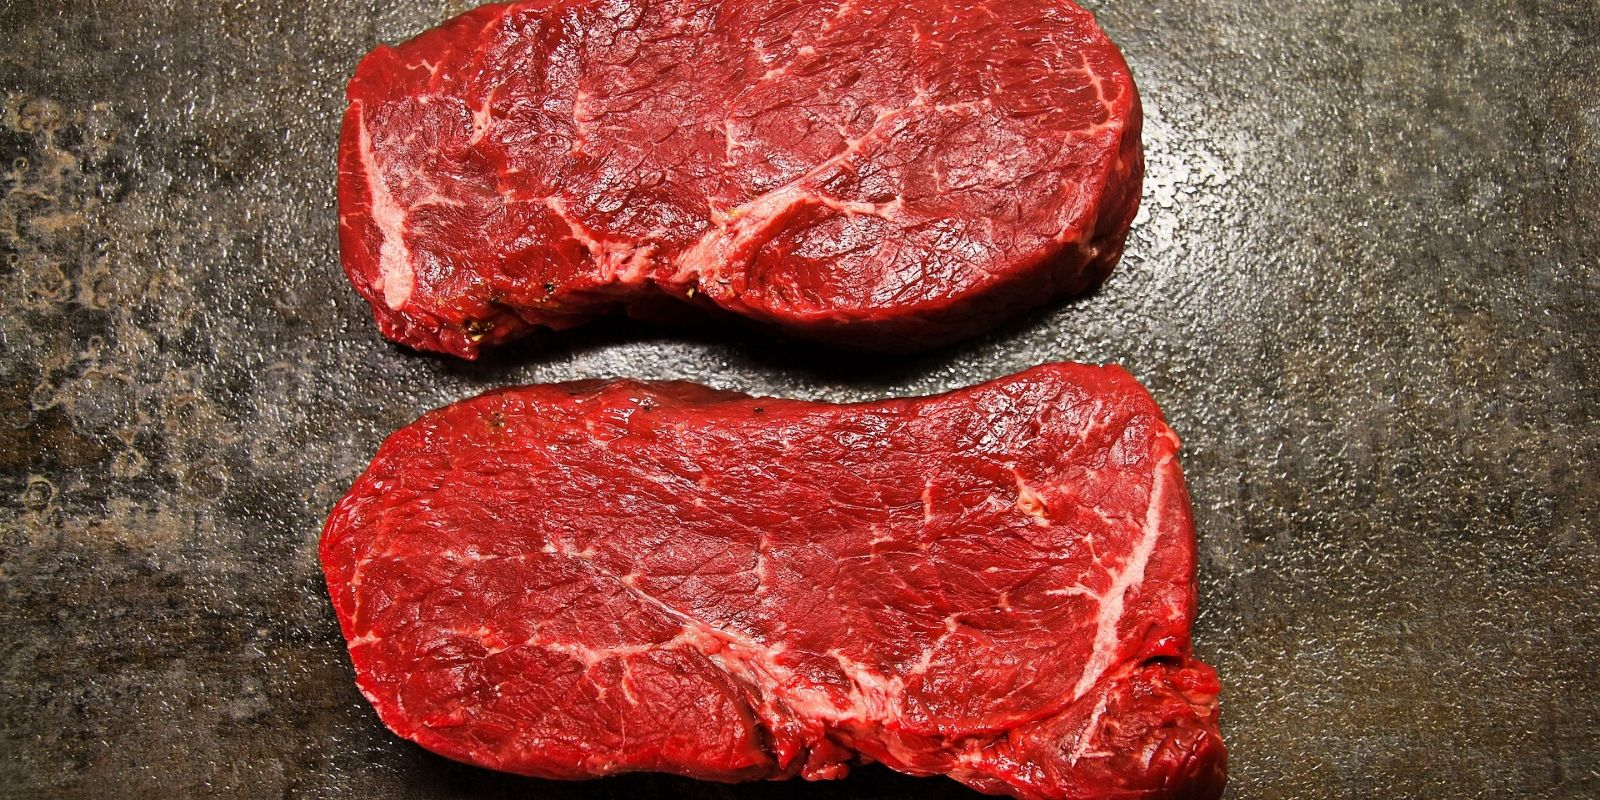 Multiple Canadian beef producers lose license after recall